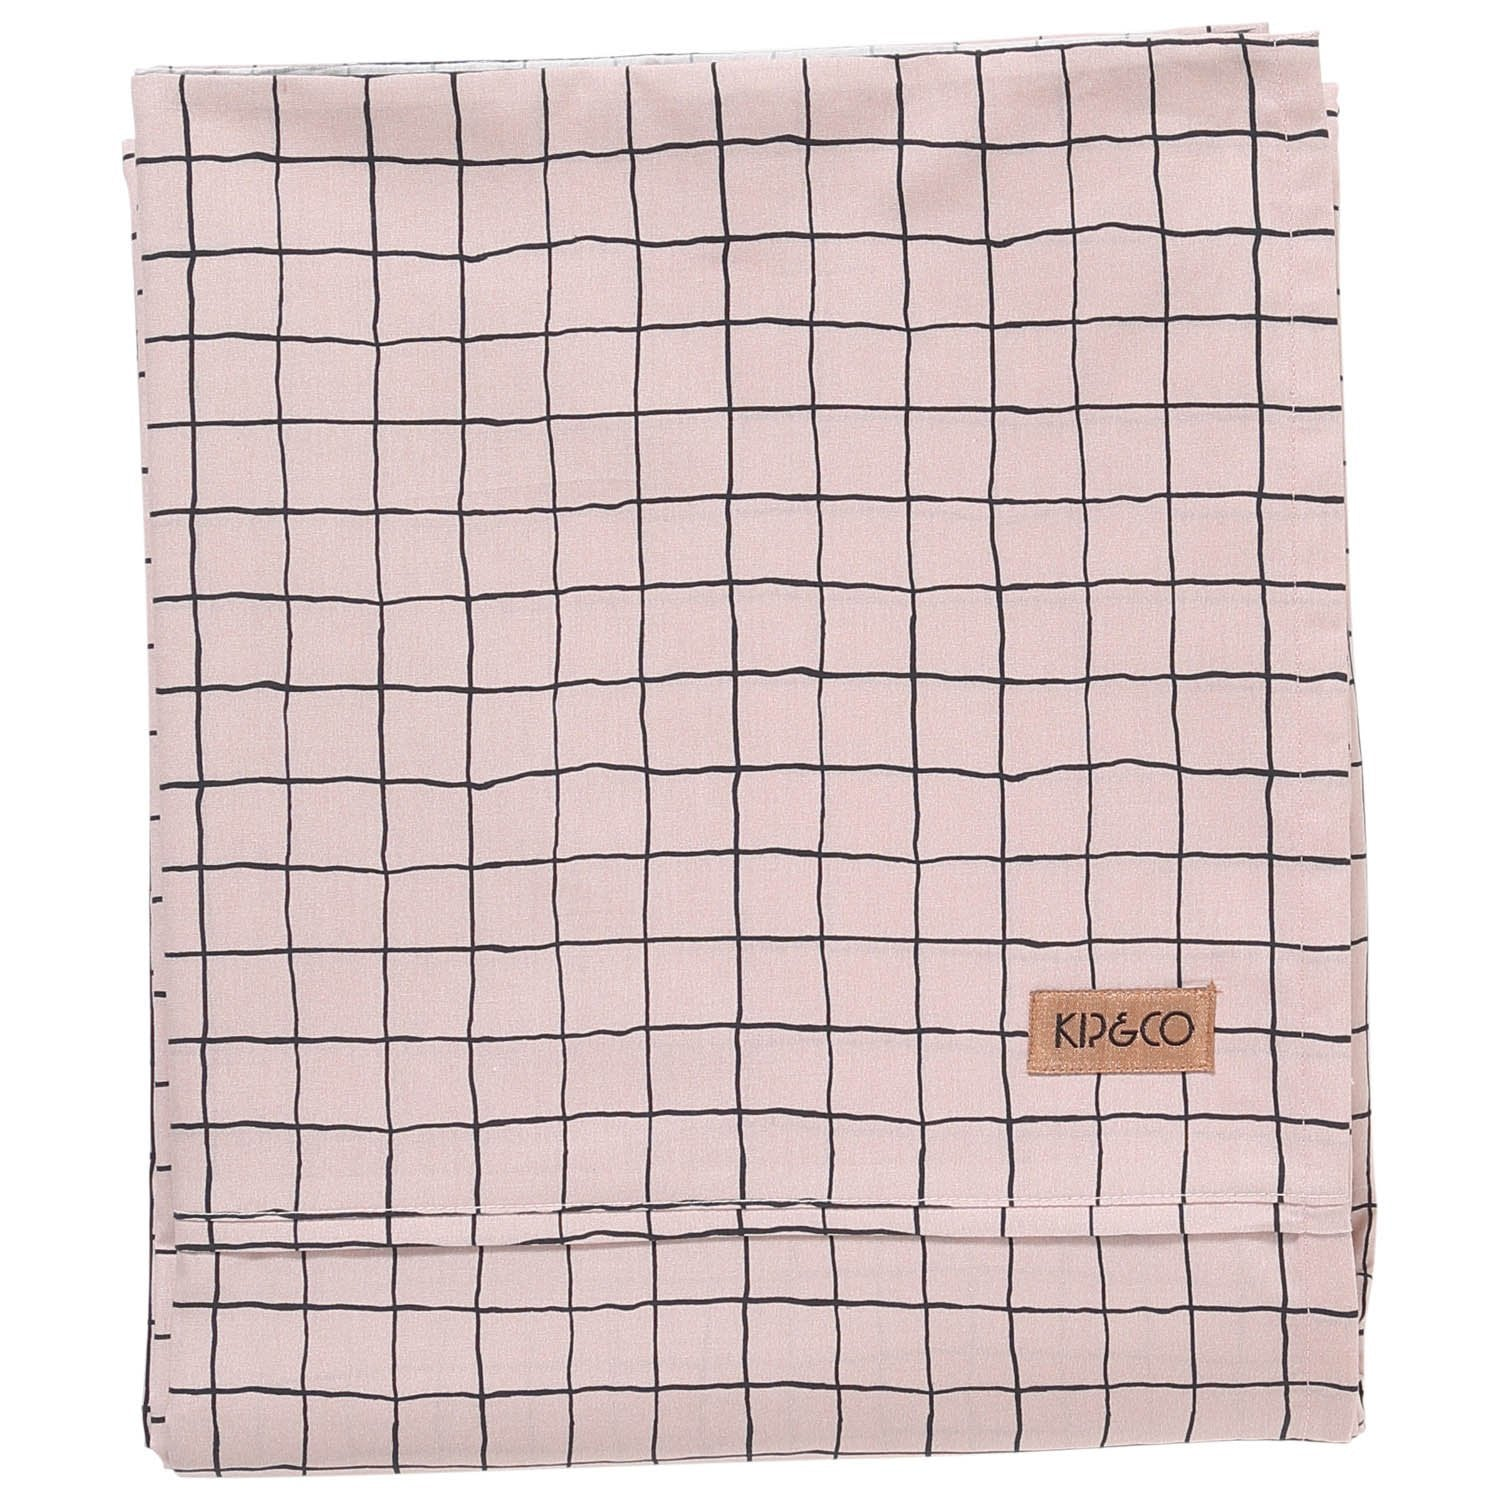 Kip & Co Check 1,2 Cotton Flat Sheet- Queen - The Artisan Storeroom